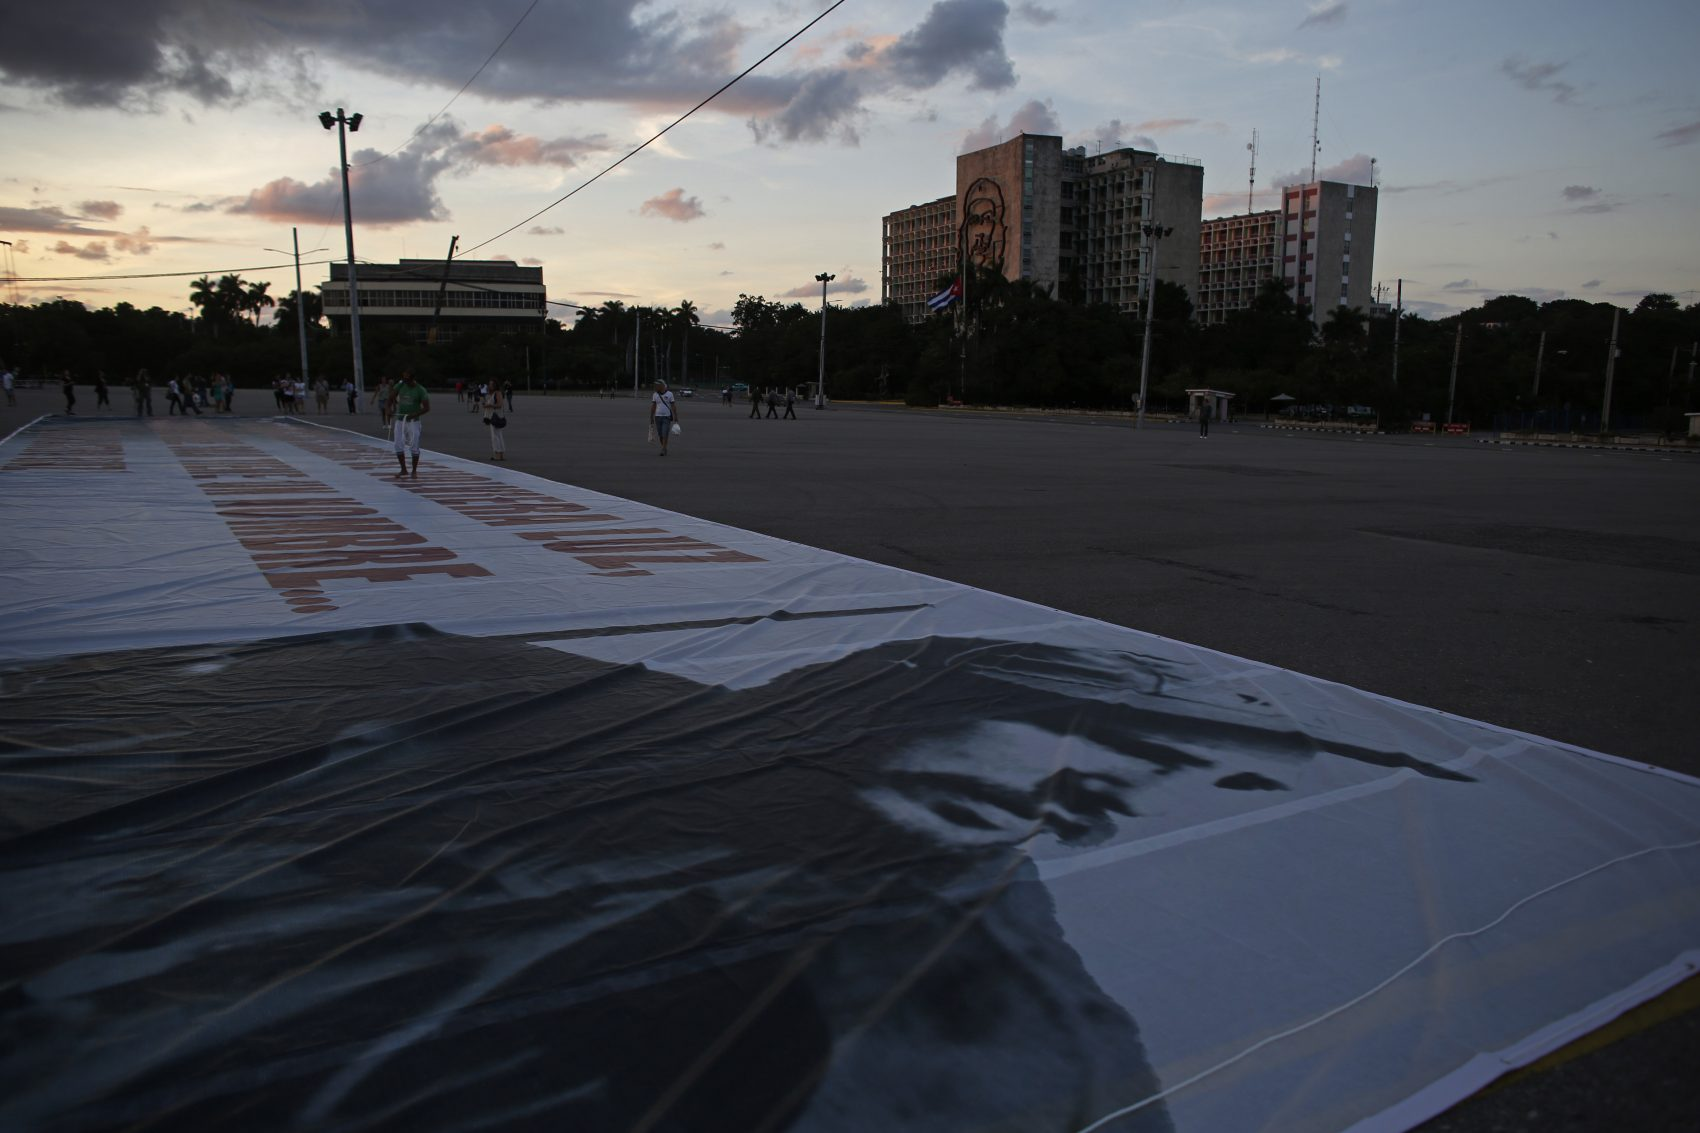 A giant banner with a photograph of the late Cuban leader Fidel Castro lies on the ground waiting to be hung at the Revolution Square in Havana, Cuba on Sunday. (Dario Lopez-Mills/AP)